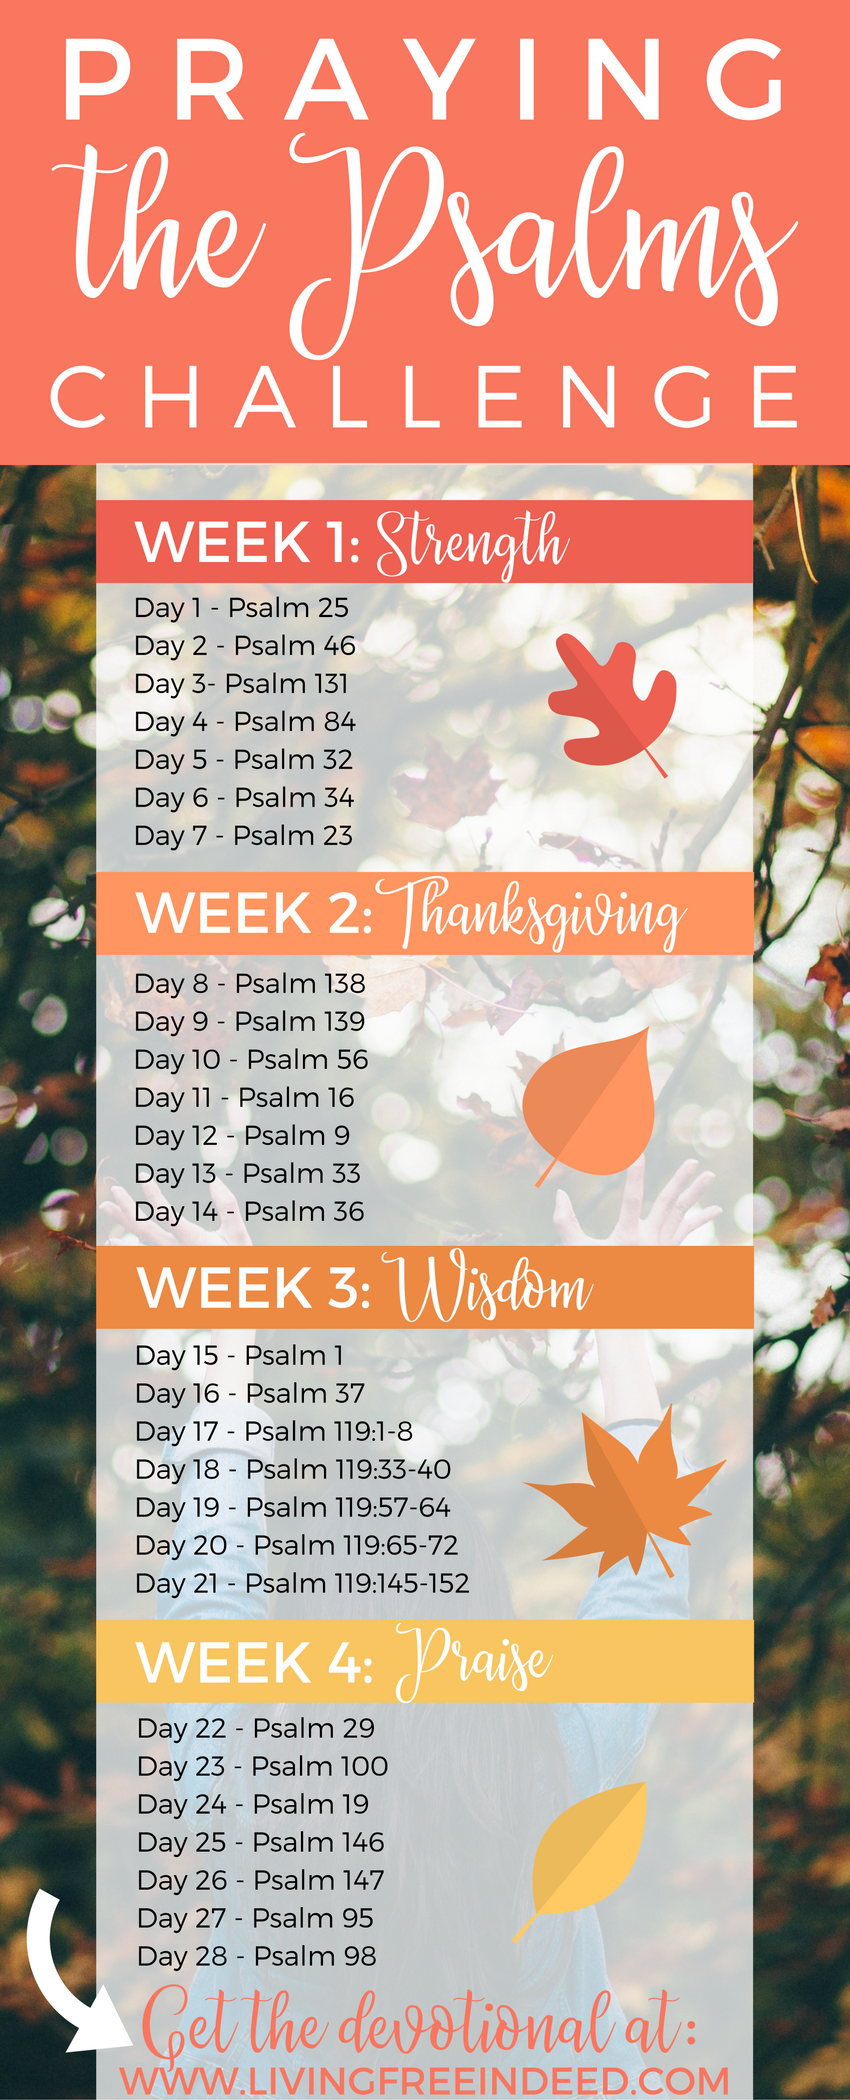 Want to deepen your prayer life? Study the Psalms this season with this new devotional that highlights their nuggets of wisdom and encouragement. Grow in understanding on how to seek the Lord daily as you read the words of God's own prayer book.   Praying the Psalms   How to Pray   Psalms of Prayer   Learn from the Psalms   Psalms Bible Study   Psalms of Thanksgiving   Psalms of Praise   Psalms for Strength